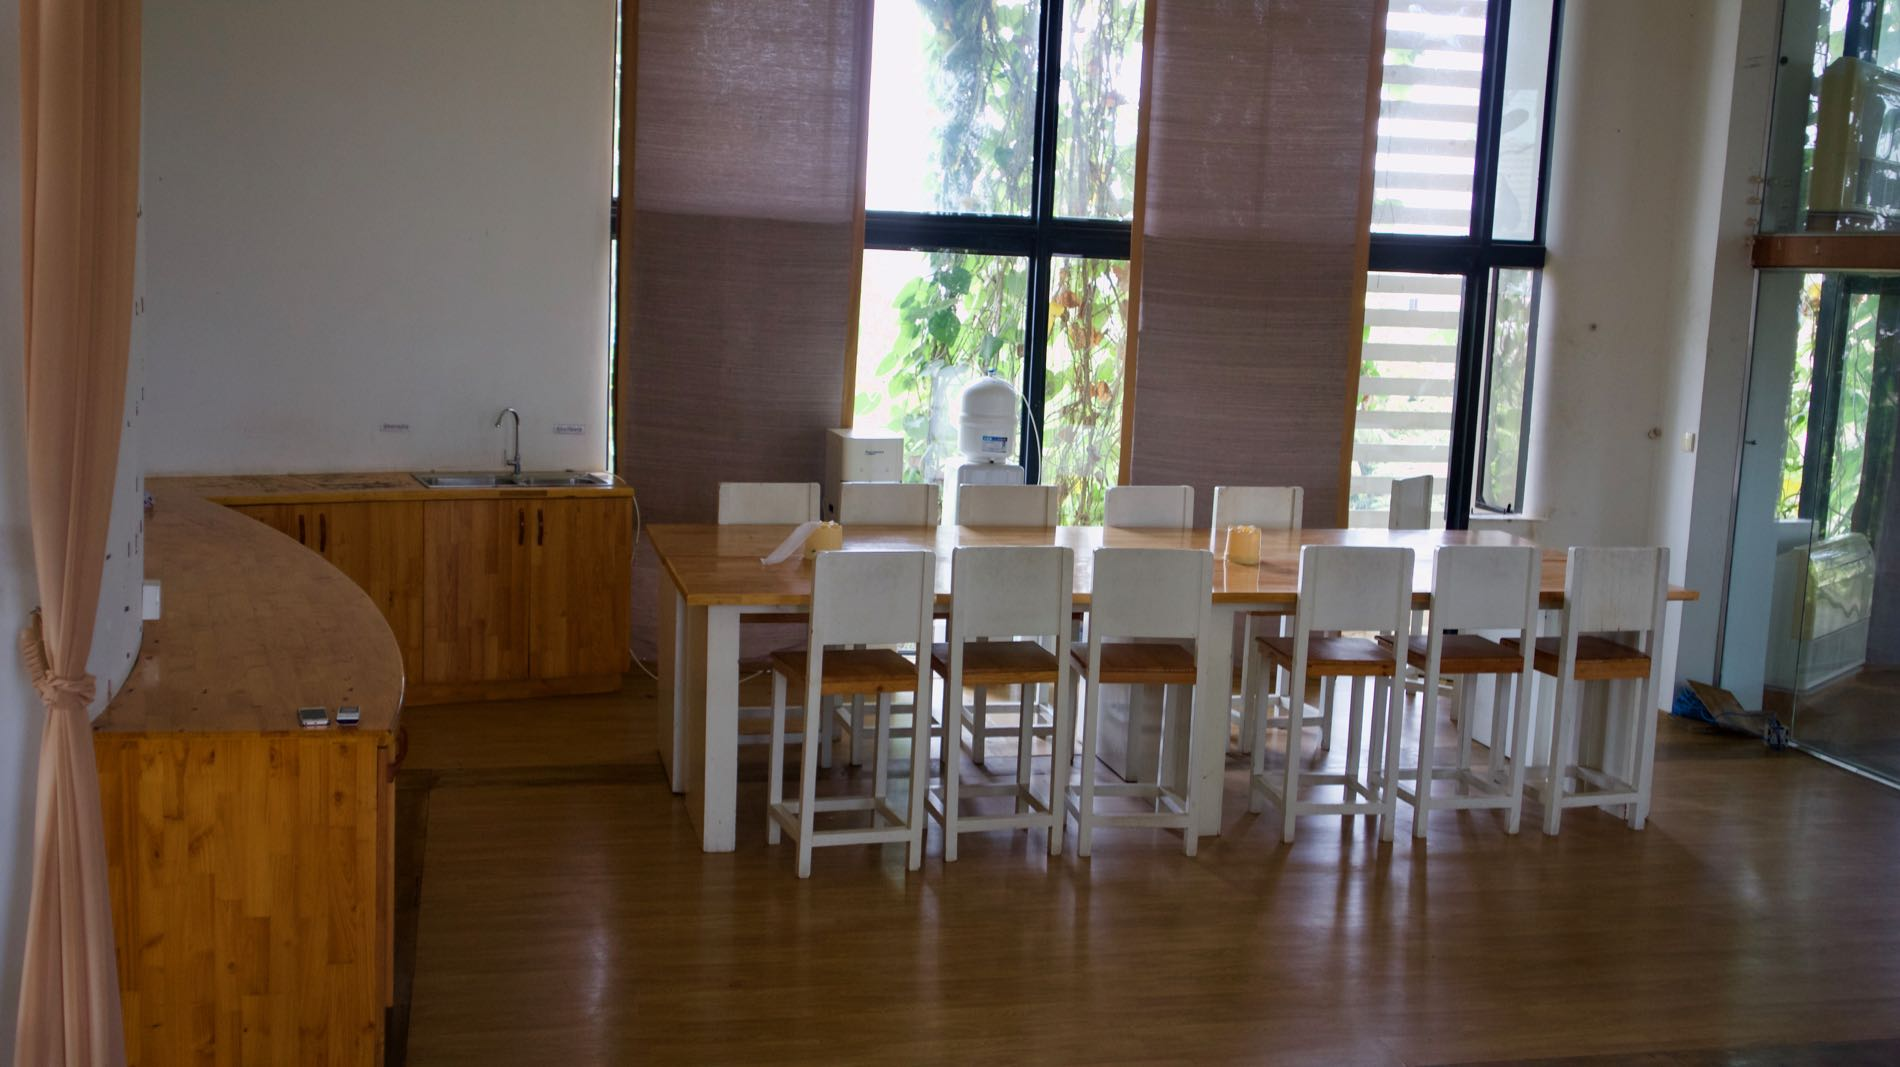 lunch-table-office-floow-phnom-penh-chory-changvar.jpg